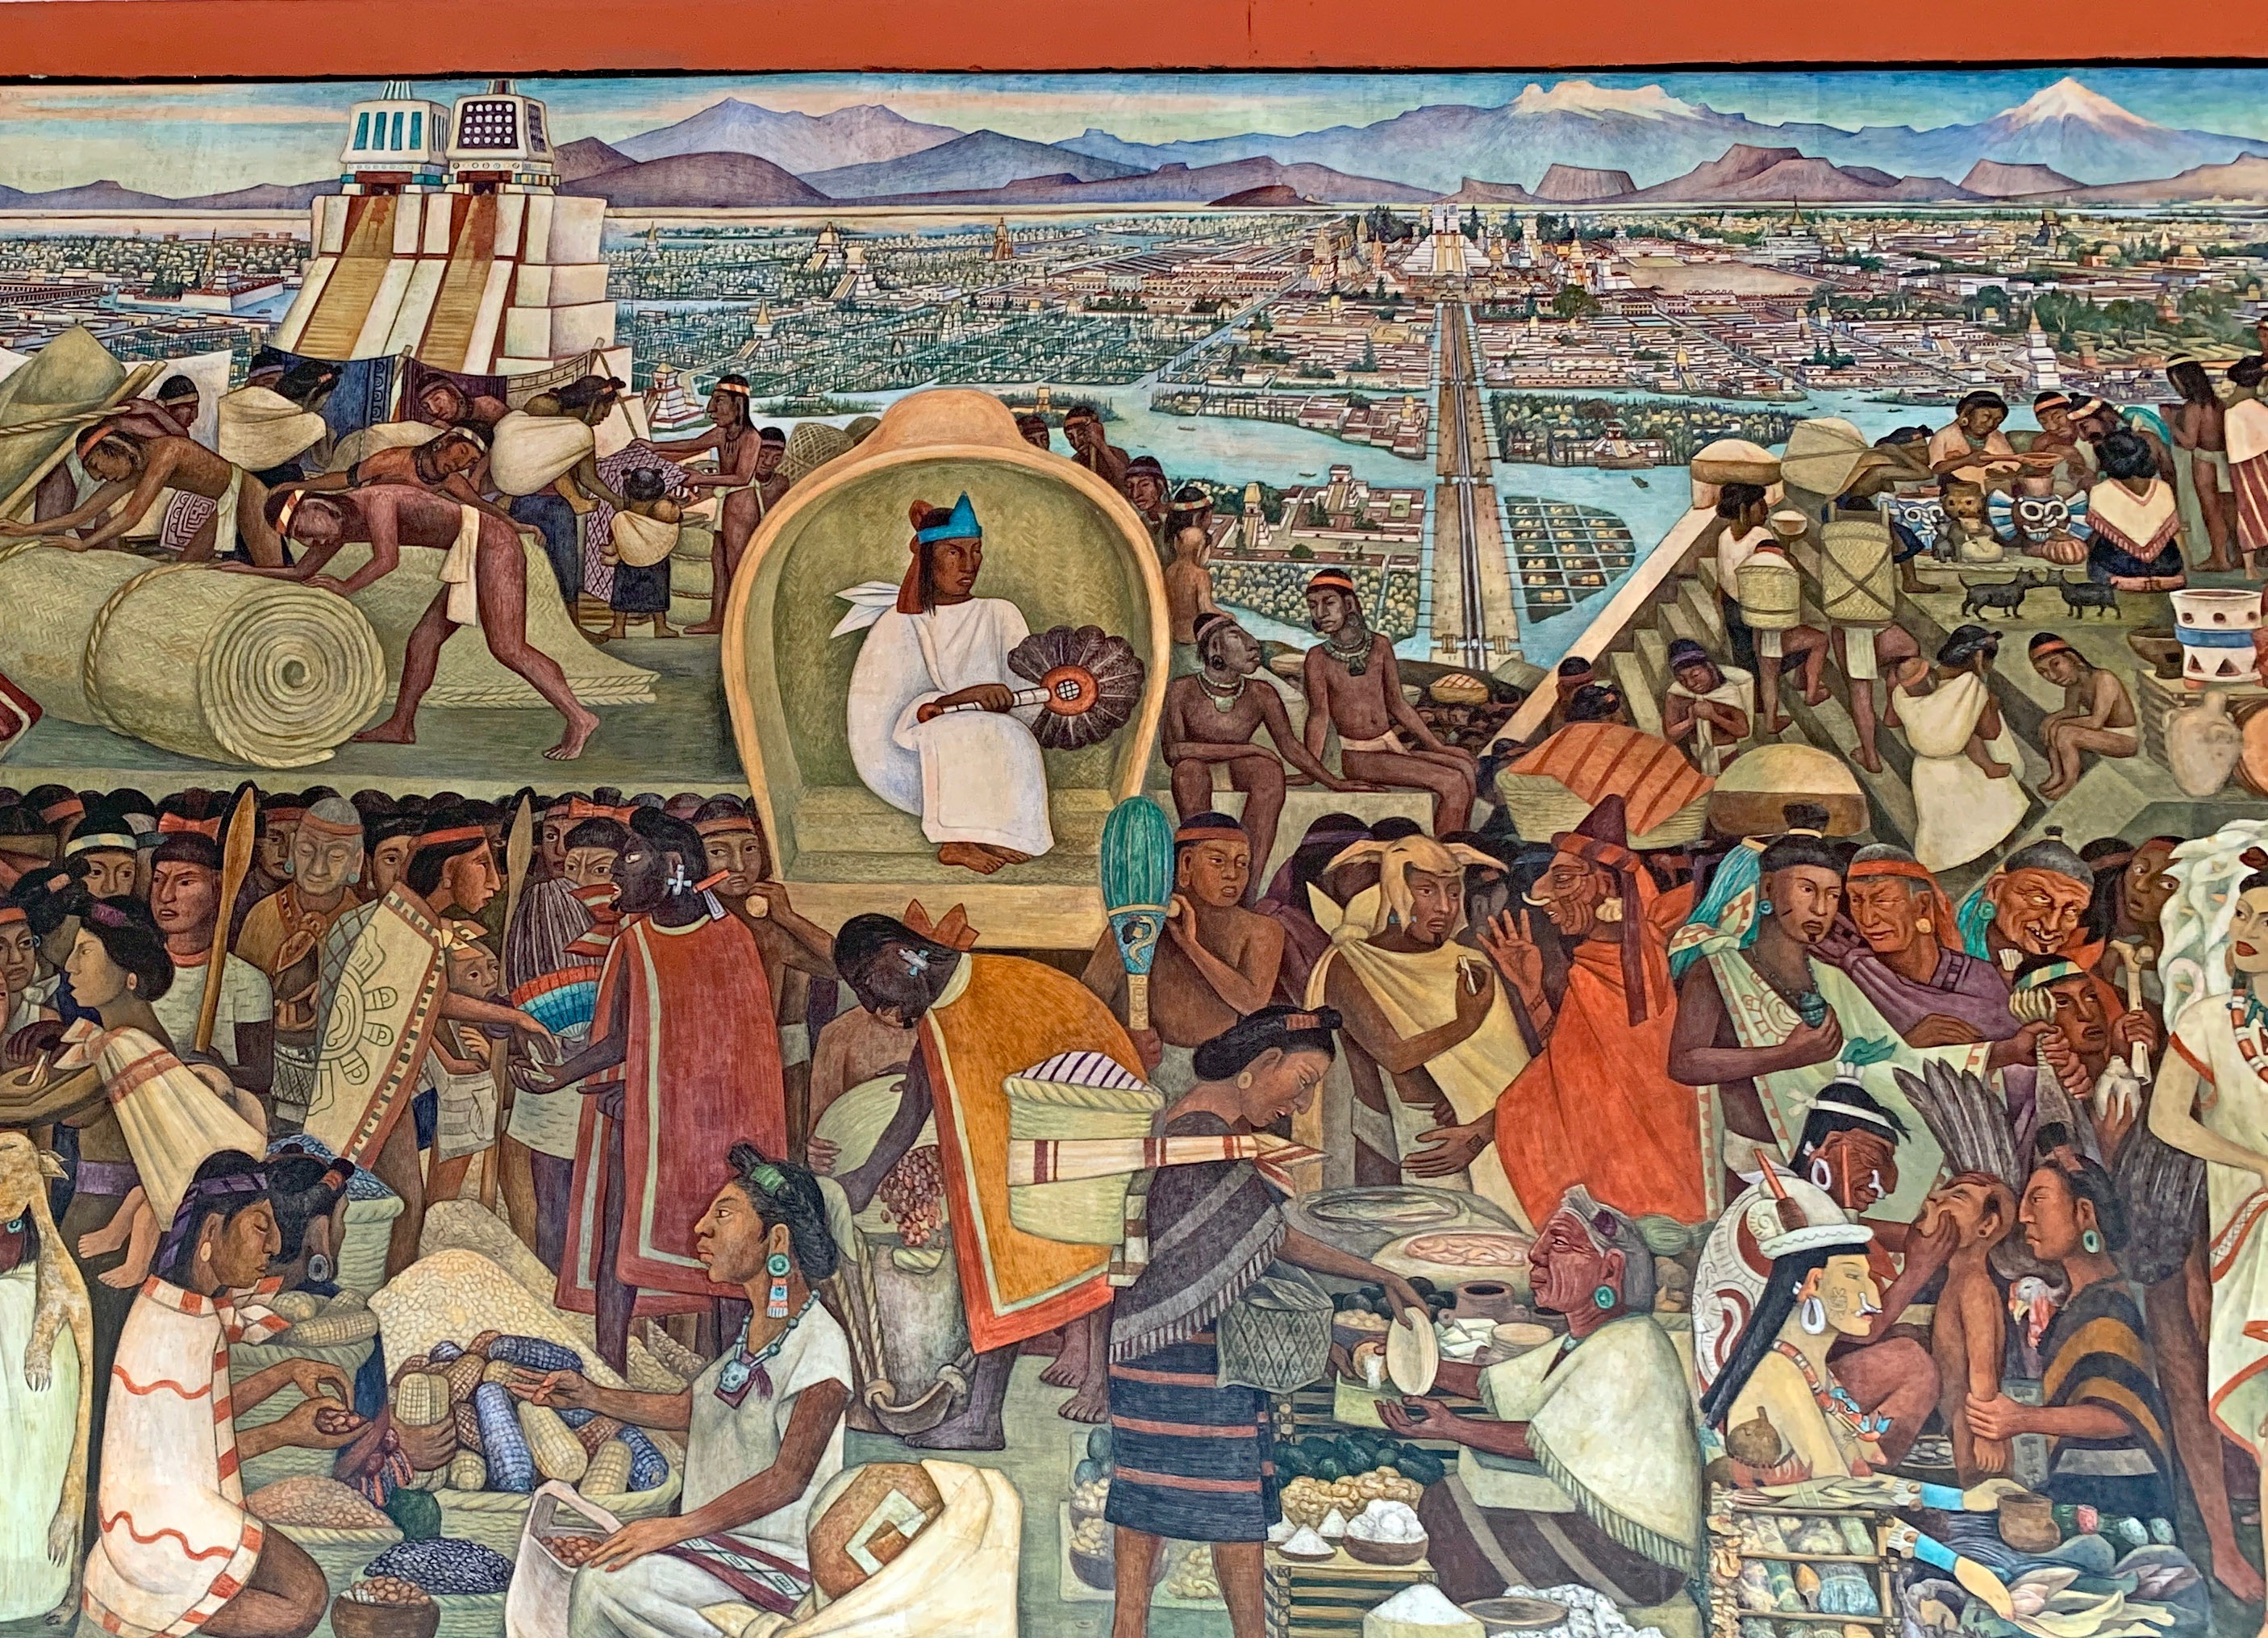 One of Diego Rivera's murals in Mexico City's national palace depicts the scene that Spanish Conquistador Hernan Cortes might have beheld as he approached Montezuma's city of Tenochtitlan. Photo: Fred Swegles